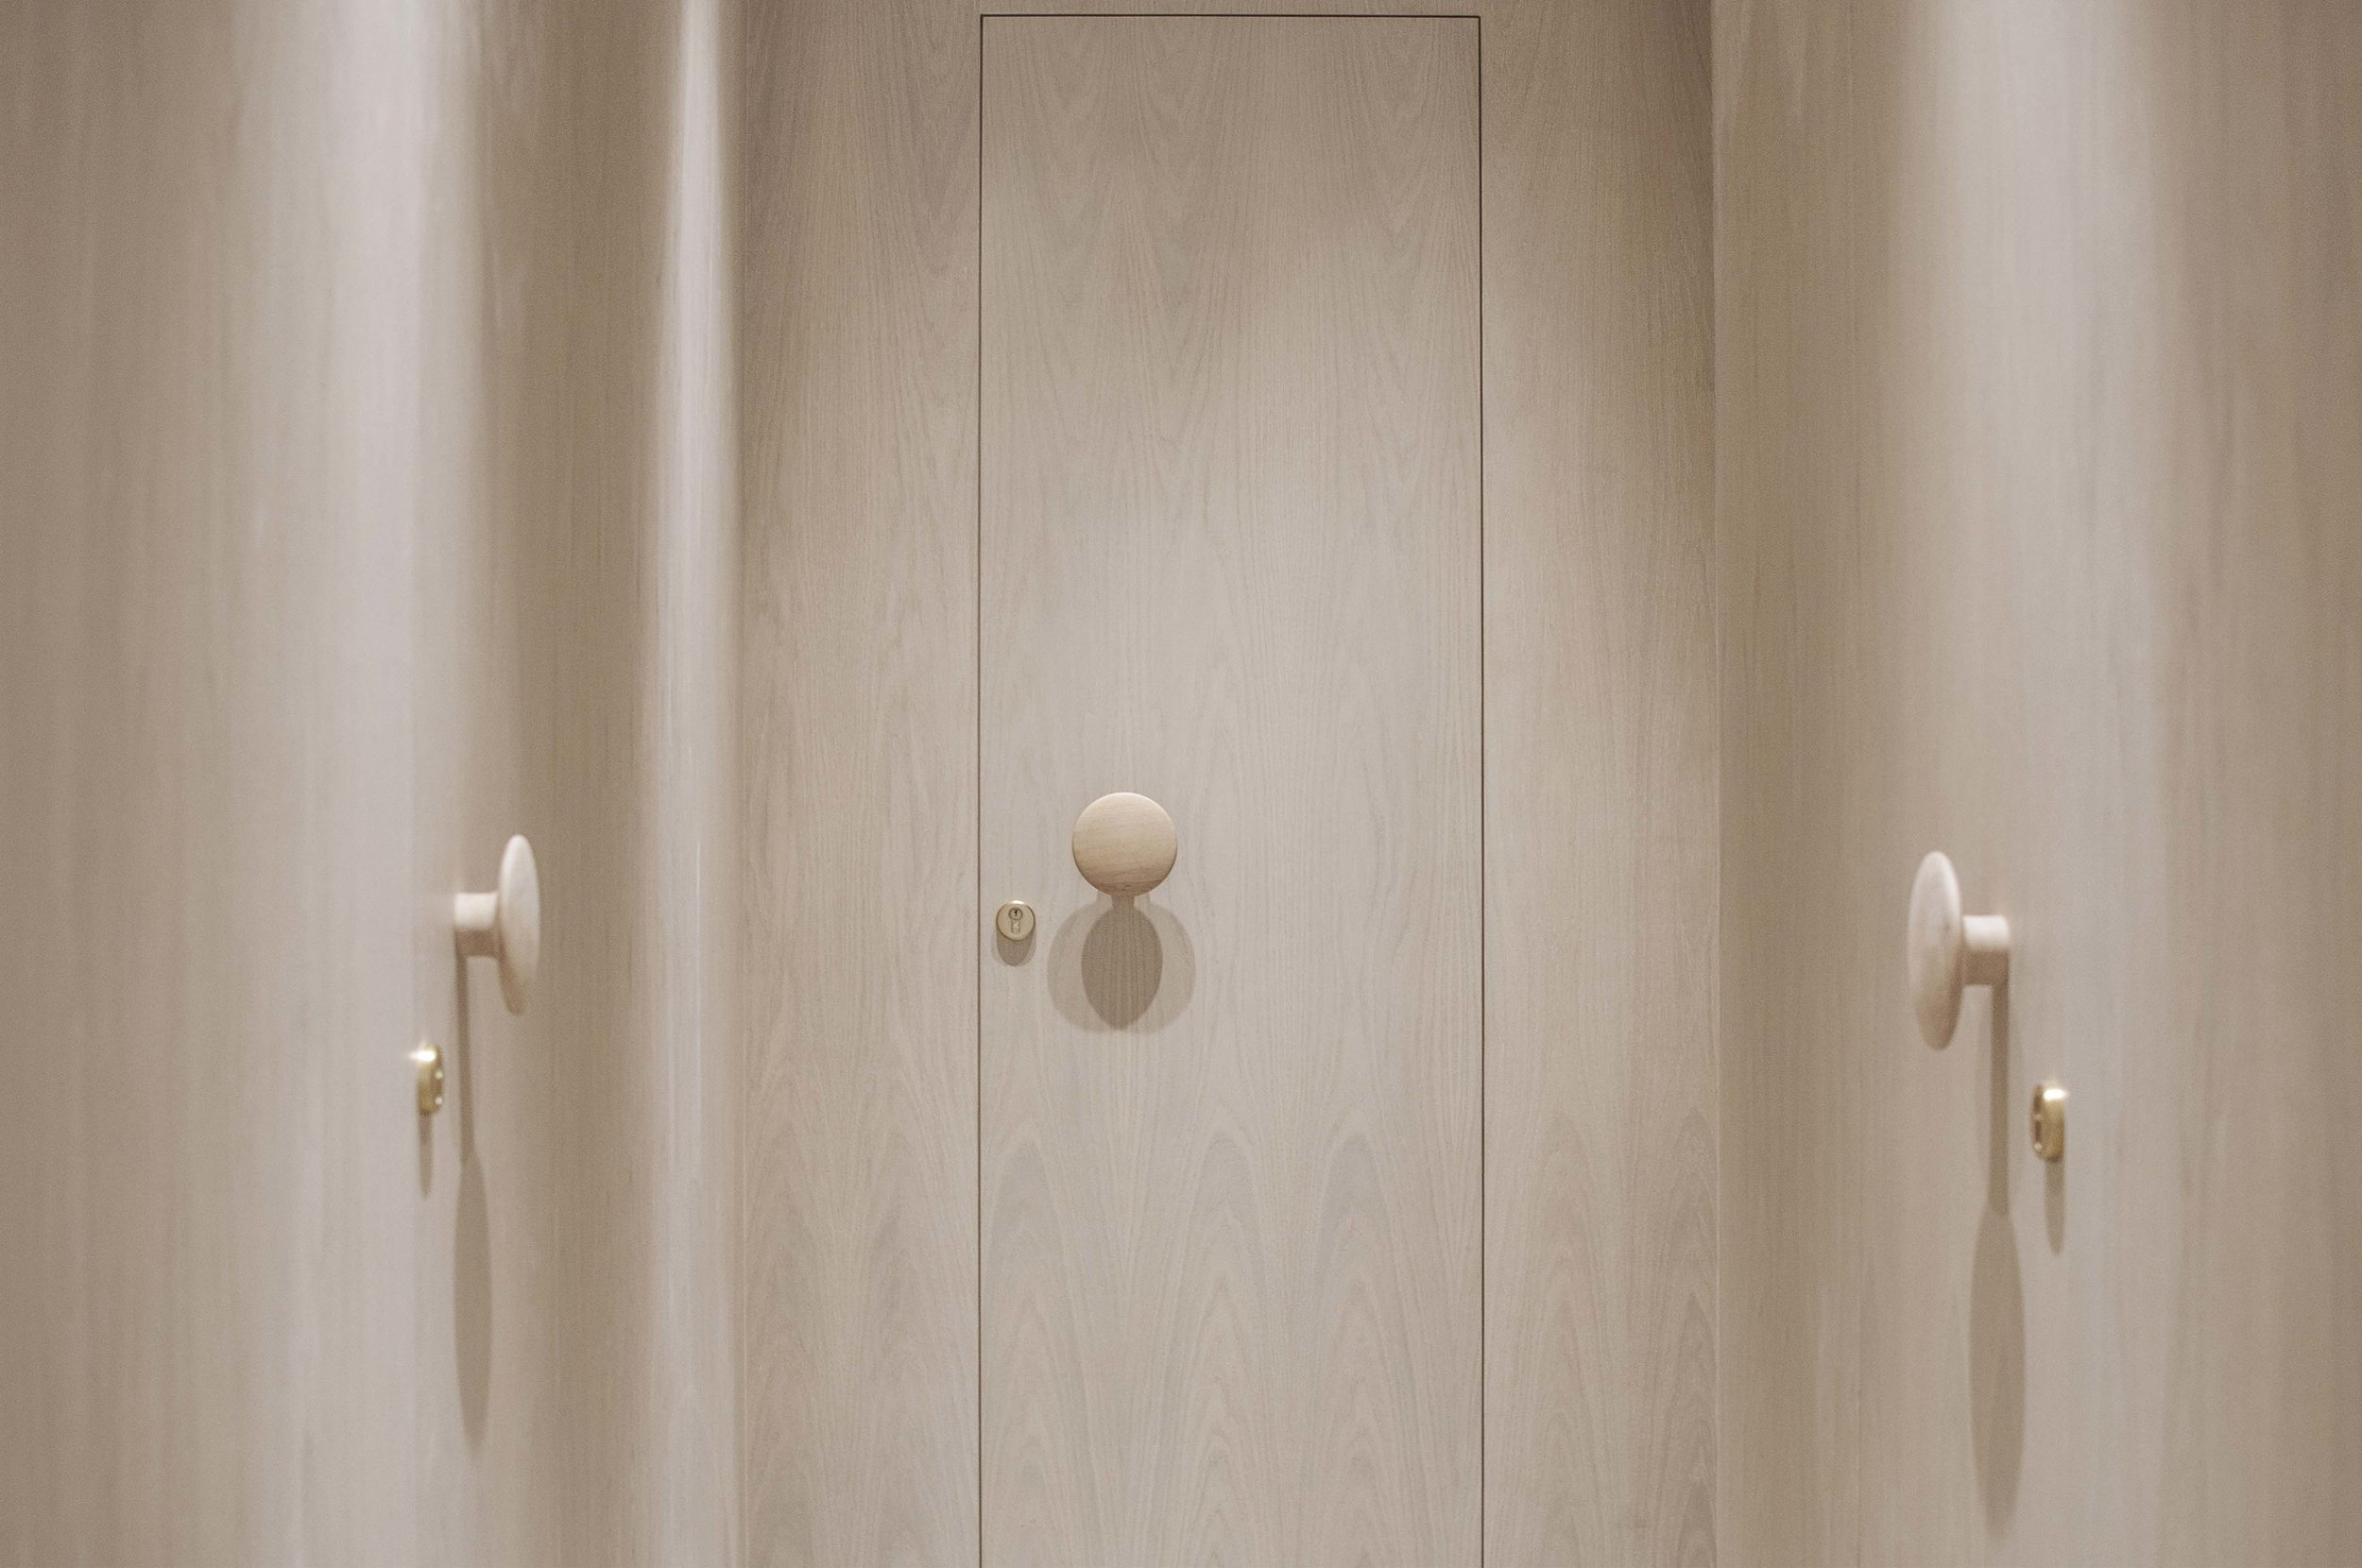 The private spaces are considered as 'small studio apartments' within the big apartment. A timber lined corridor differentiates the private quarters, with concealed doors to the private bedrooms suites.